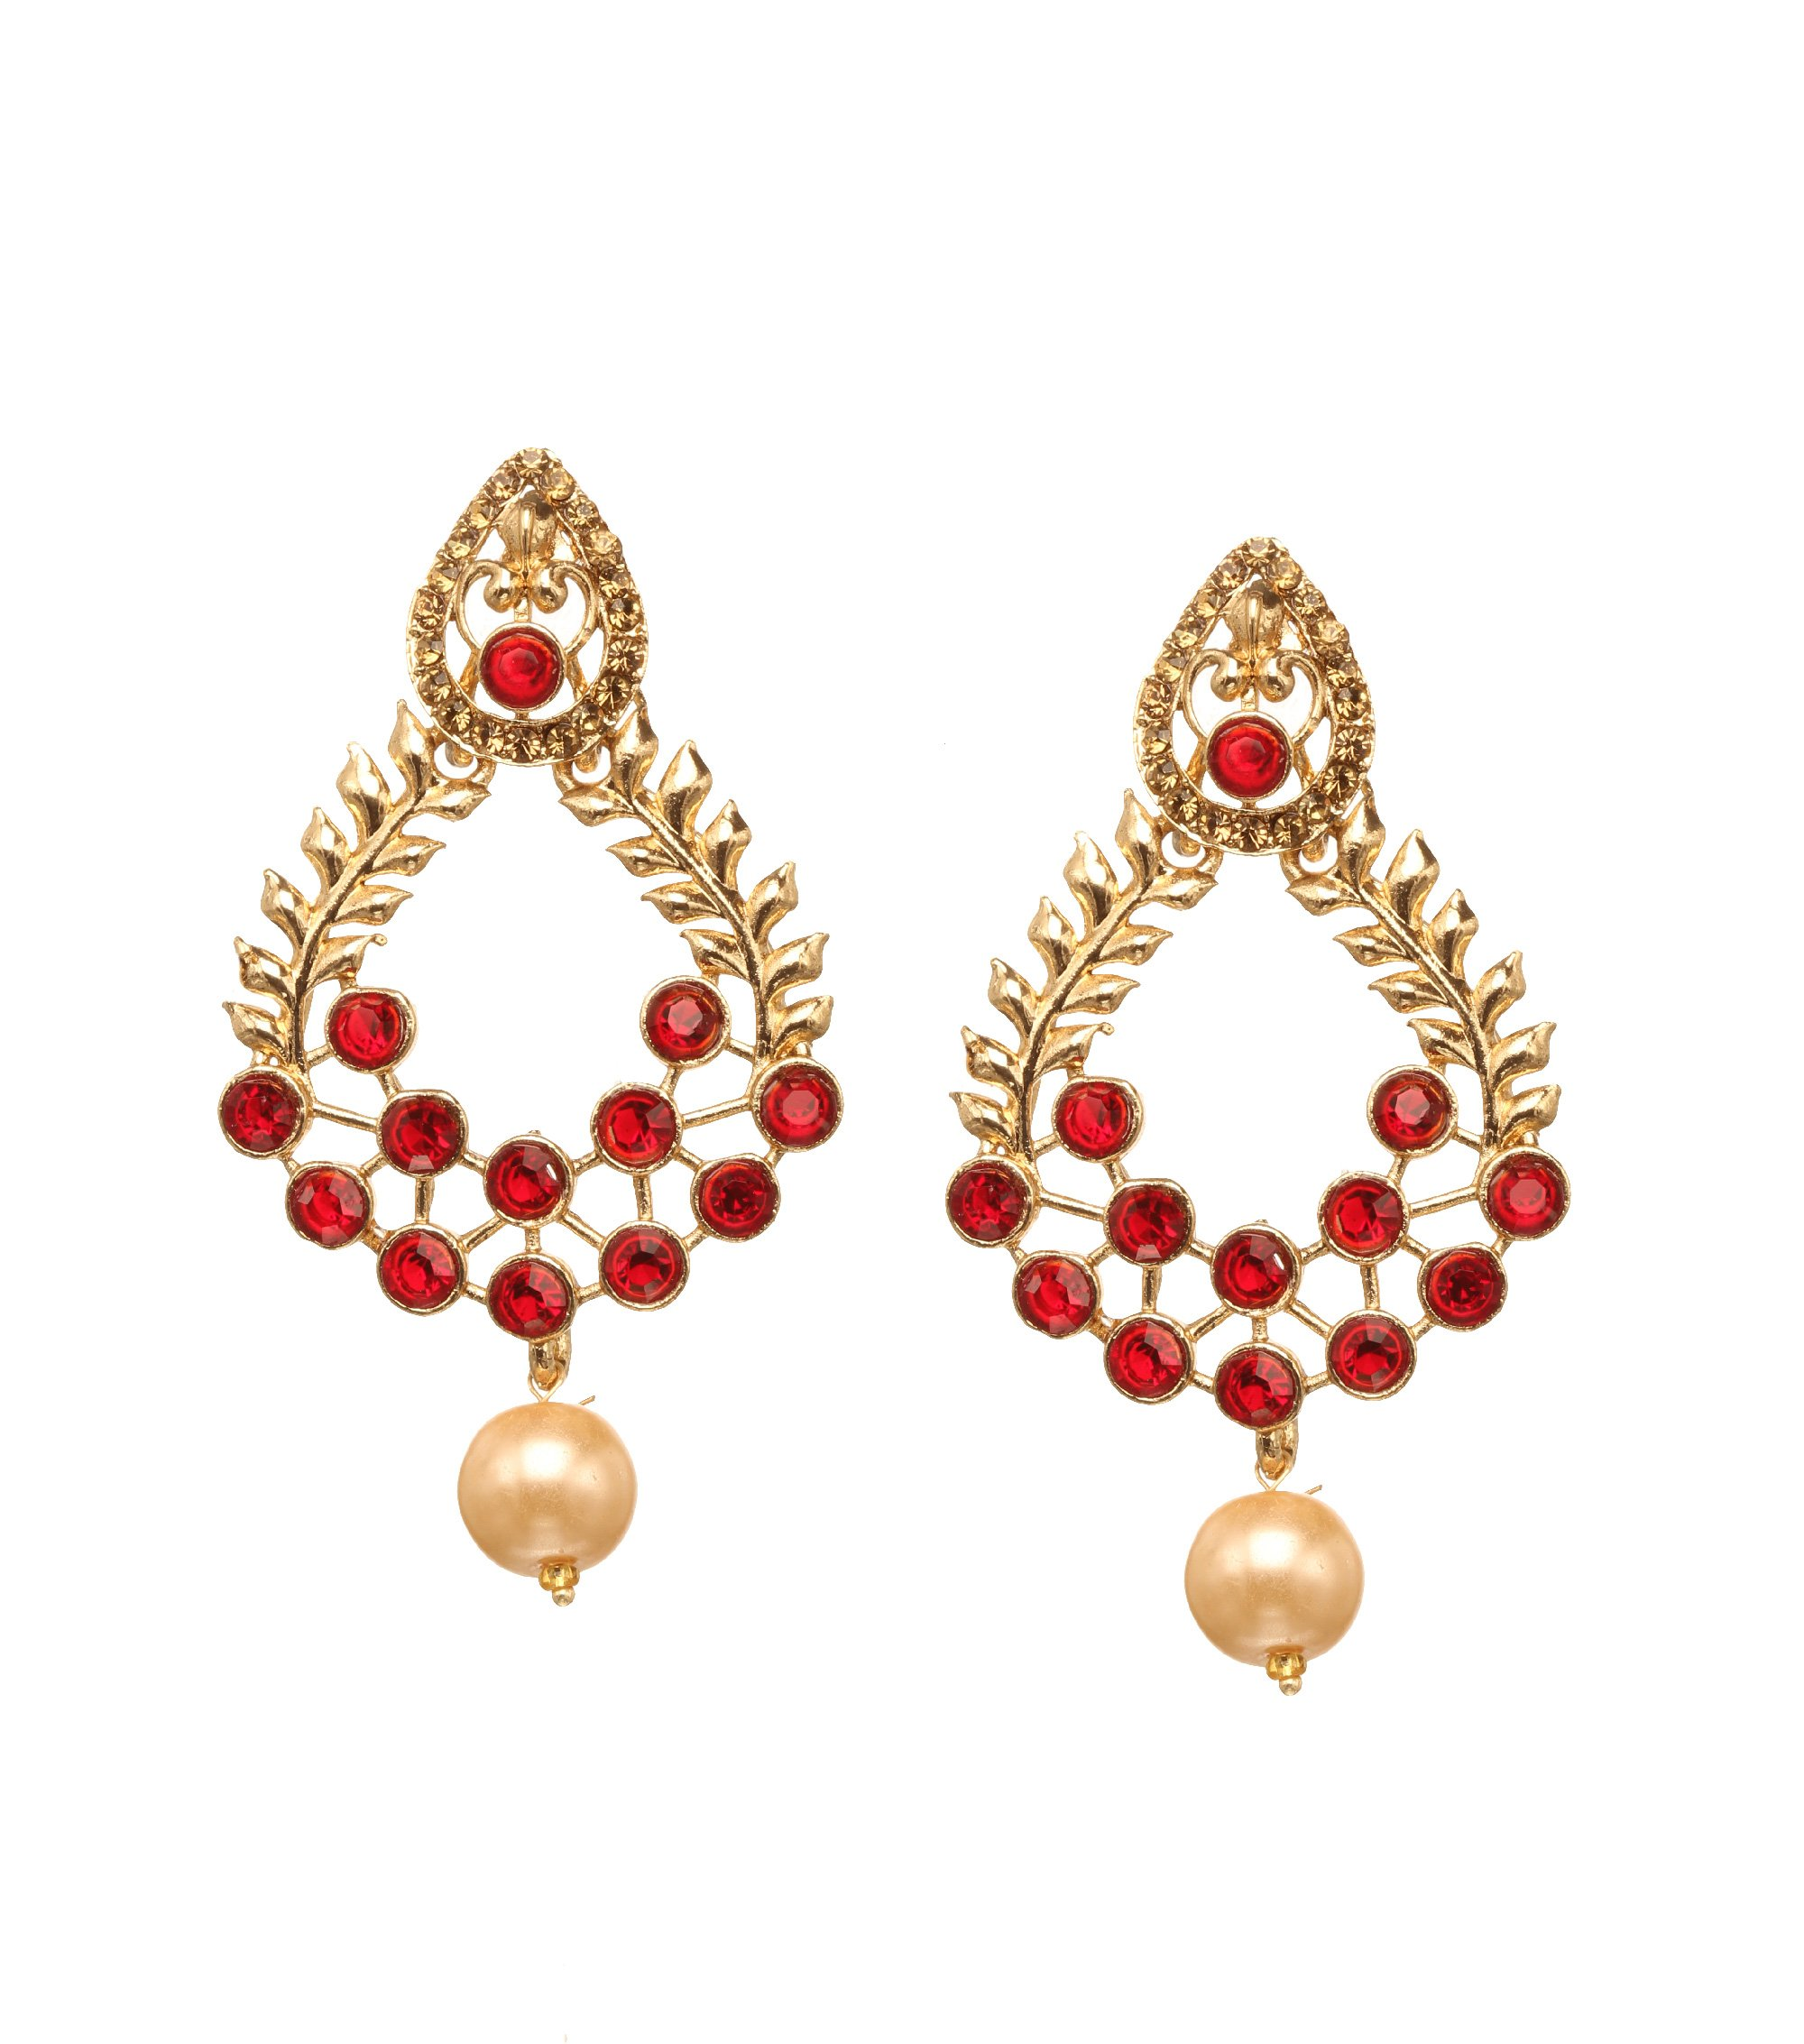 Bindhani Indian Bollywood Style Faux Pearl Drop Bridal Wedding Earrings For Women (Red)